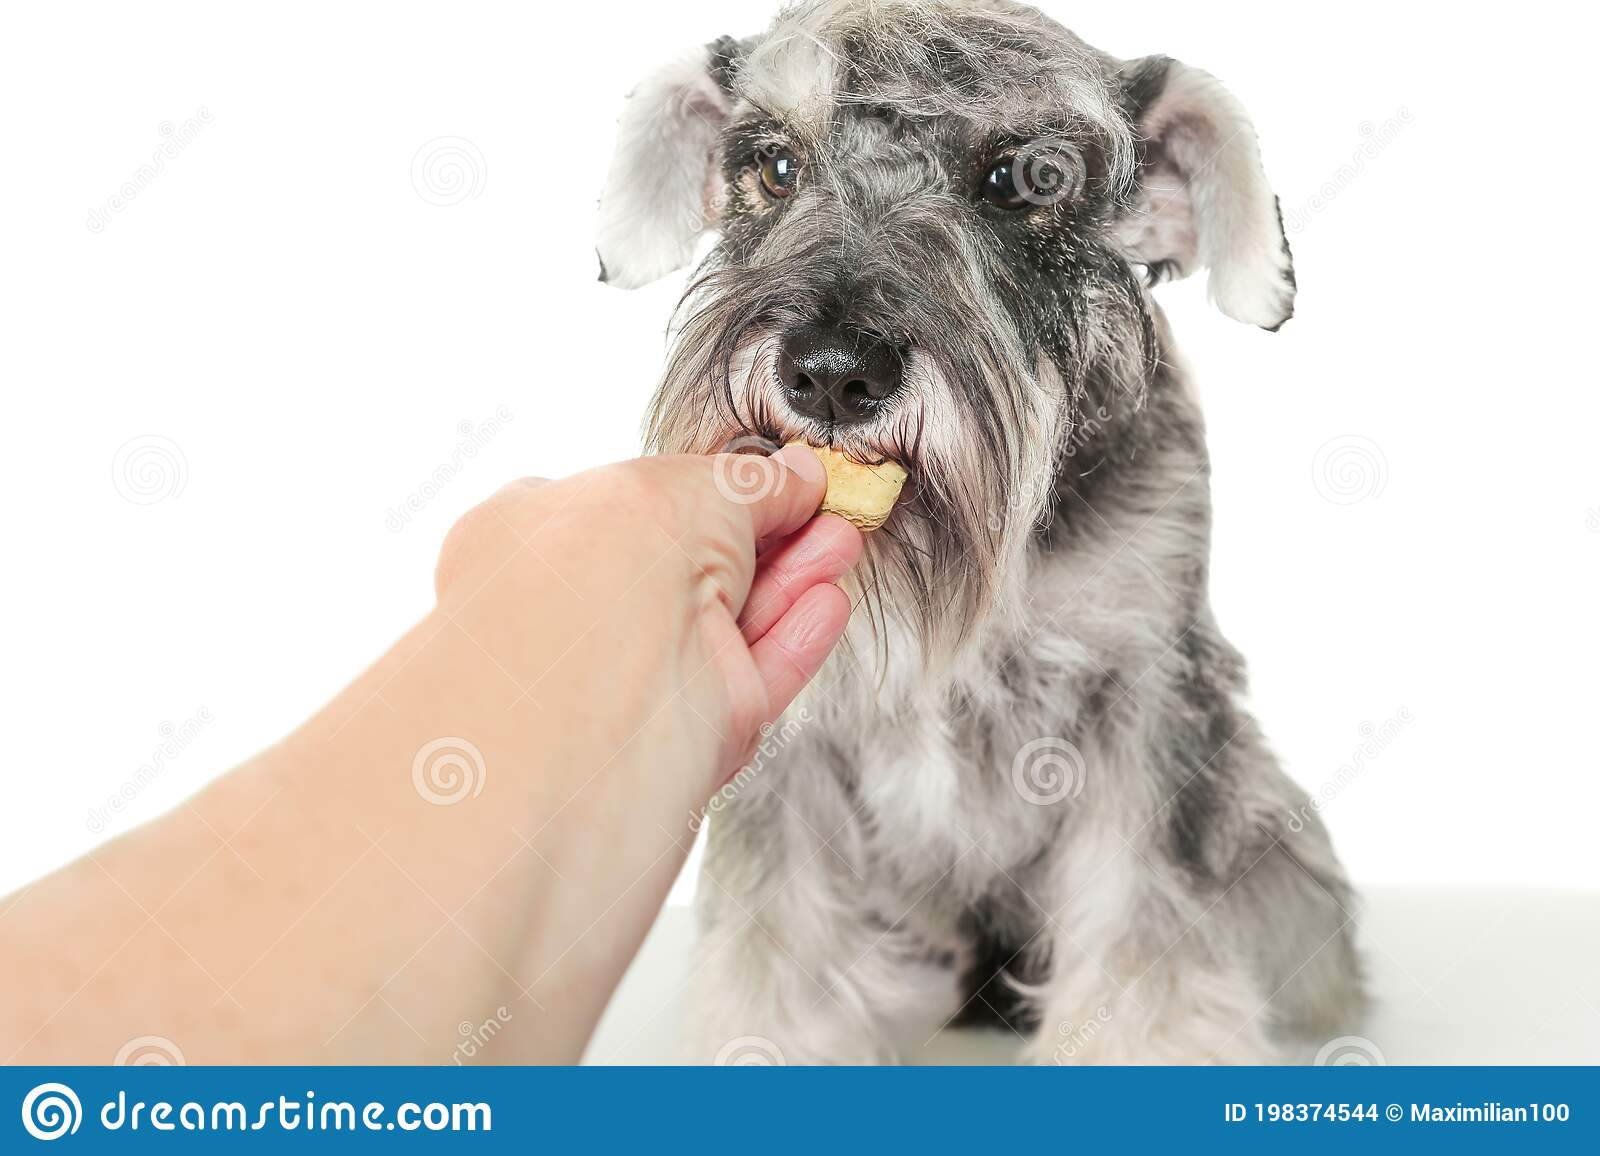 232 Schnauzer Food Photos Free Royalty Free Stock Photos From Dreamstime